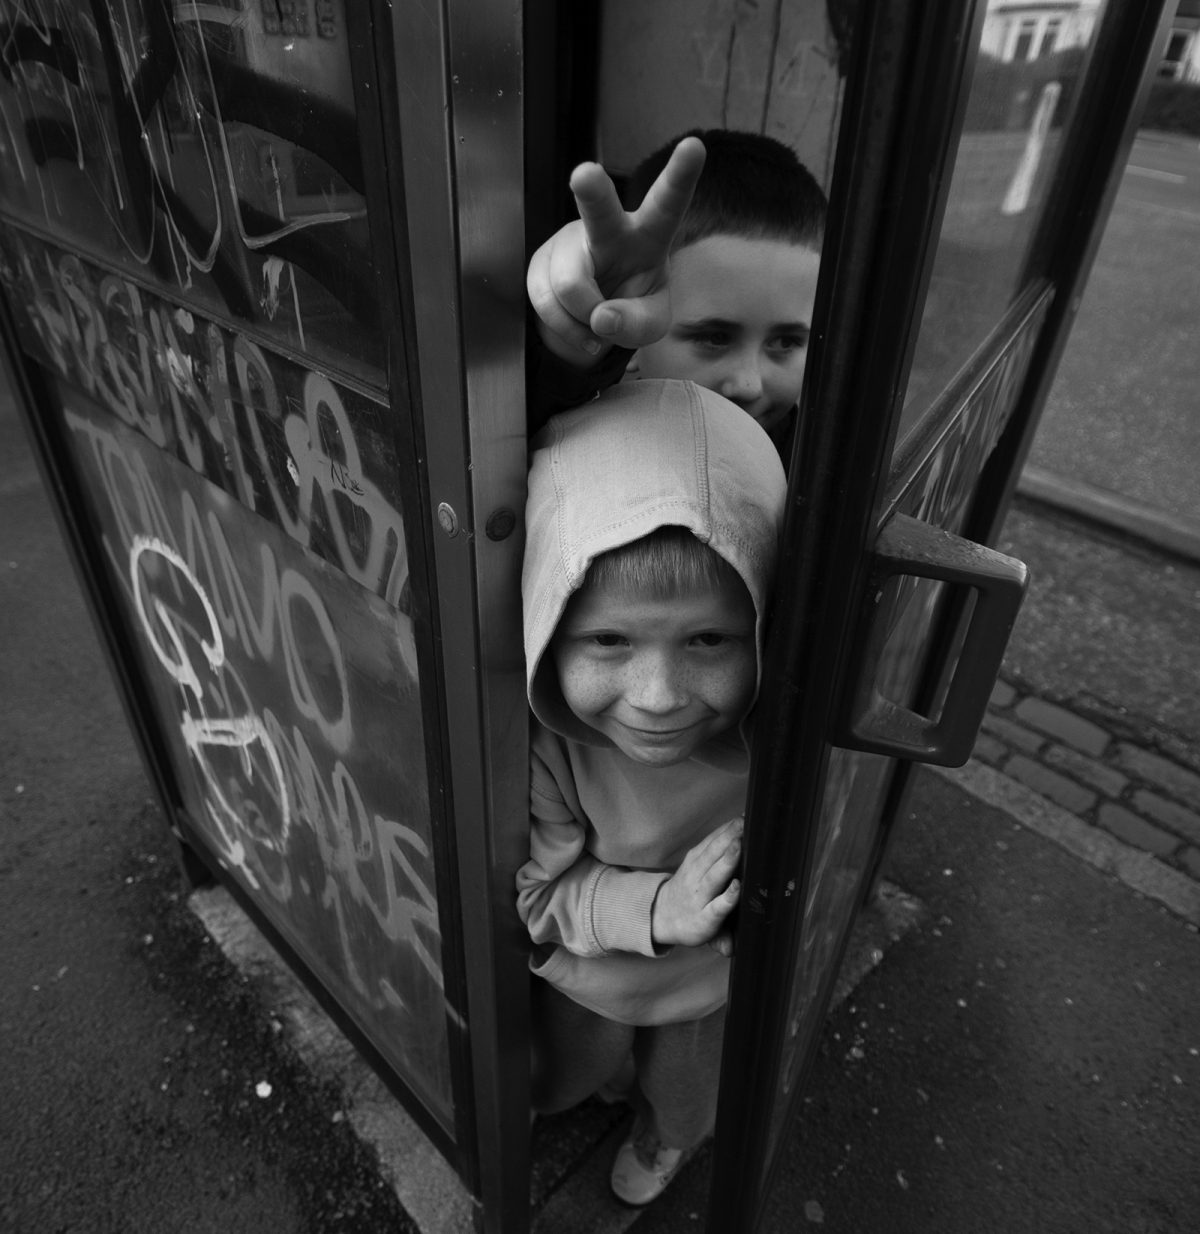 Brian Anderson, Glasgow, street photography, The Telephone Boys